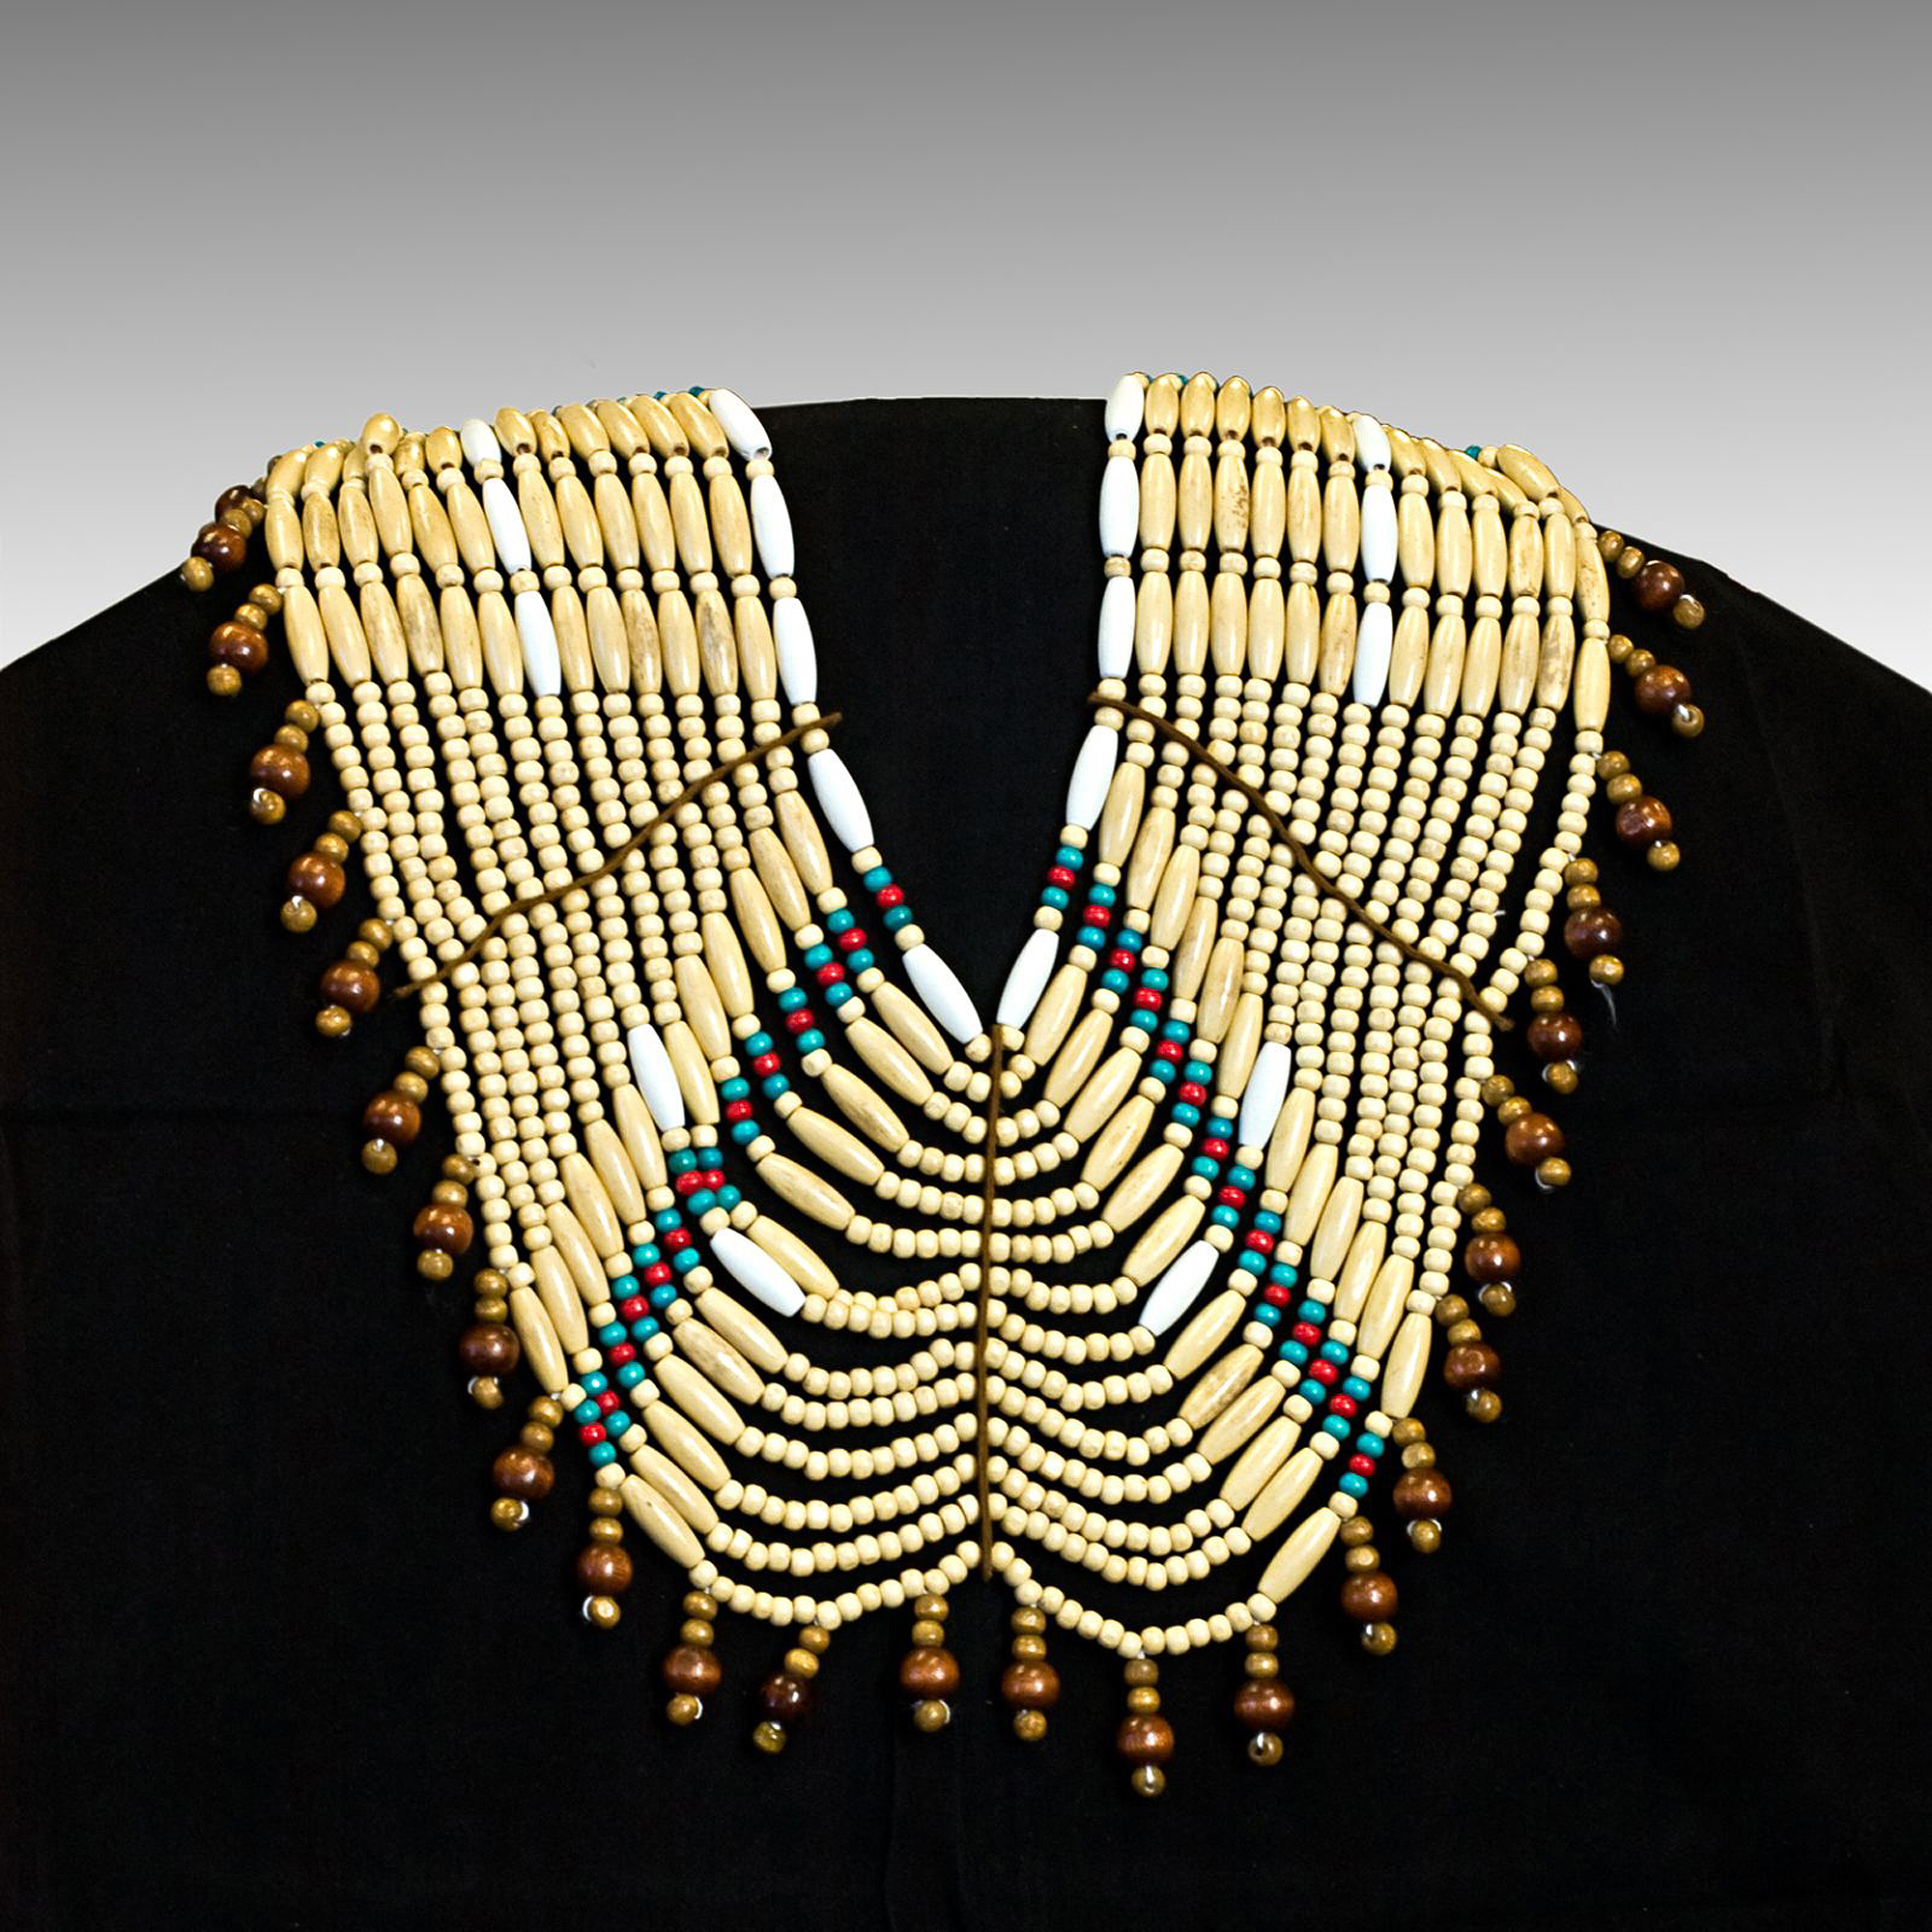 Sunnywood Beaded Chest Native American Adult Costume Accessory